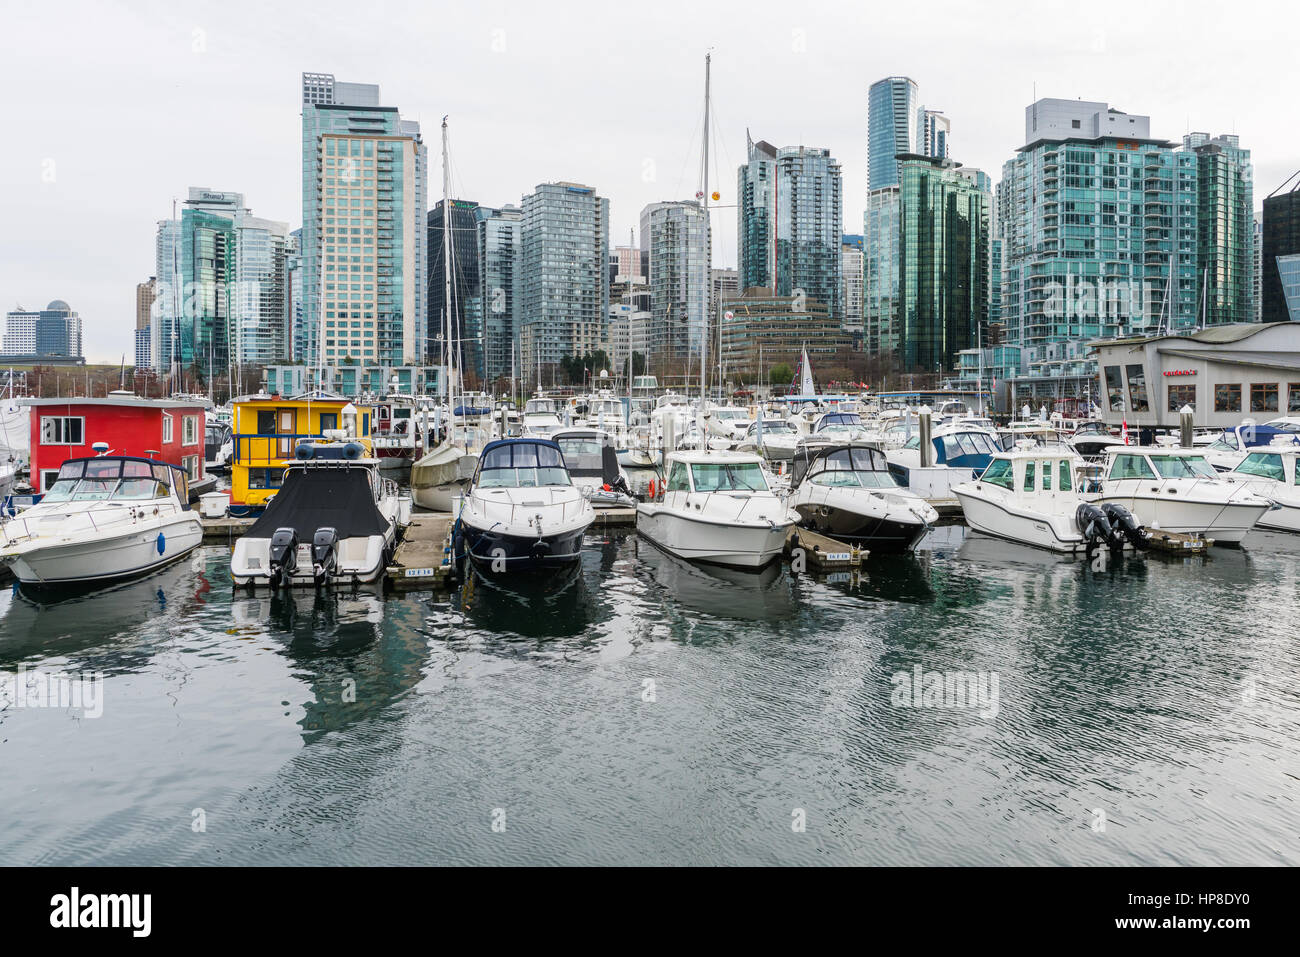 Vancouver, Canada - January 28, 2017: Vancouver city skyline with boats in foreground Stock Photo